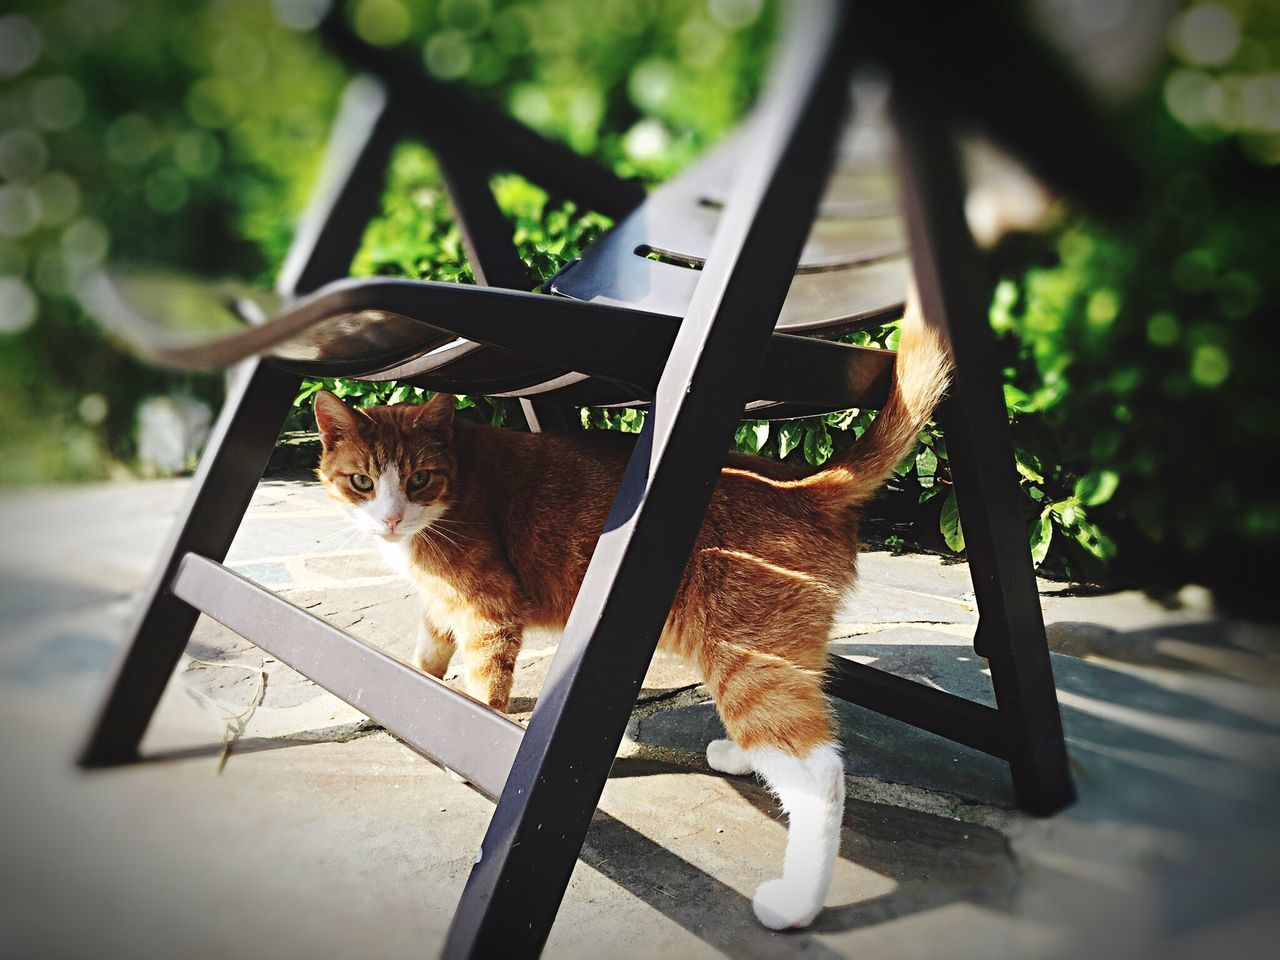 domestic cat, animal themes, domestic animals, pets, mammal, feline, one animal, cat, no people, day, sitting, looking at camera, portrait, outdoors, close-up